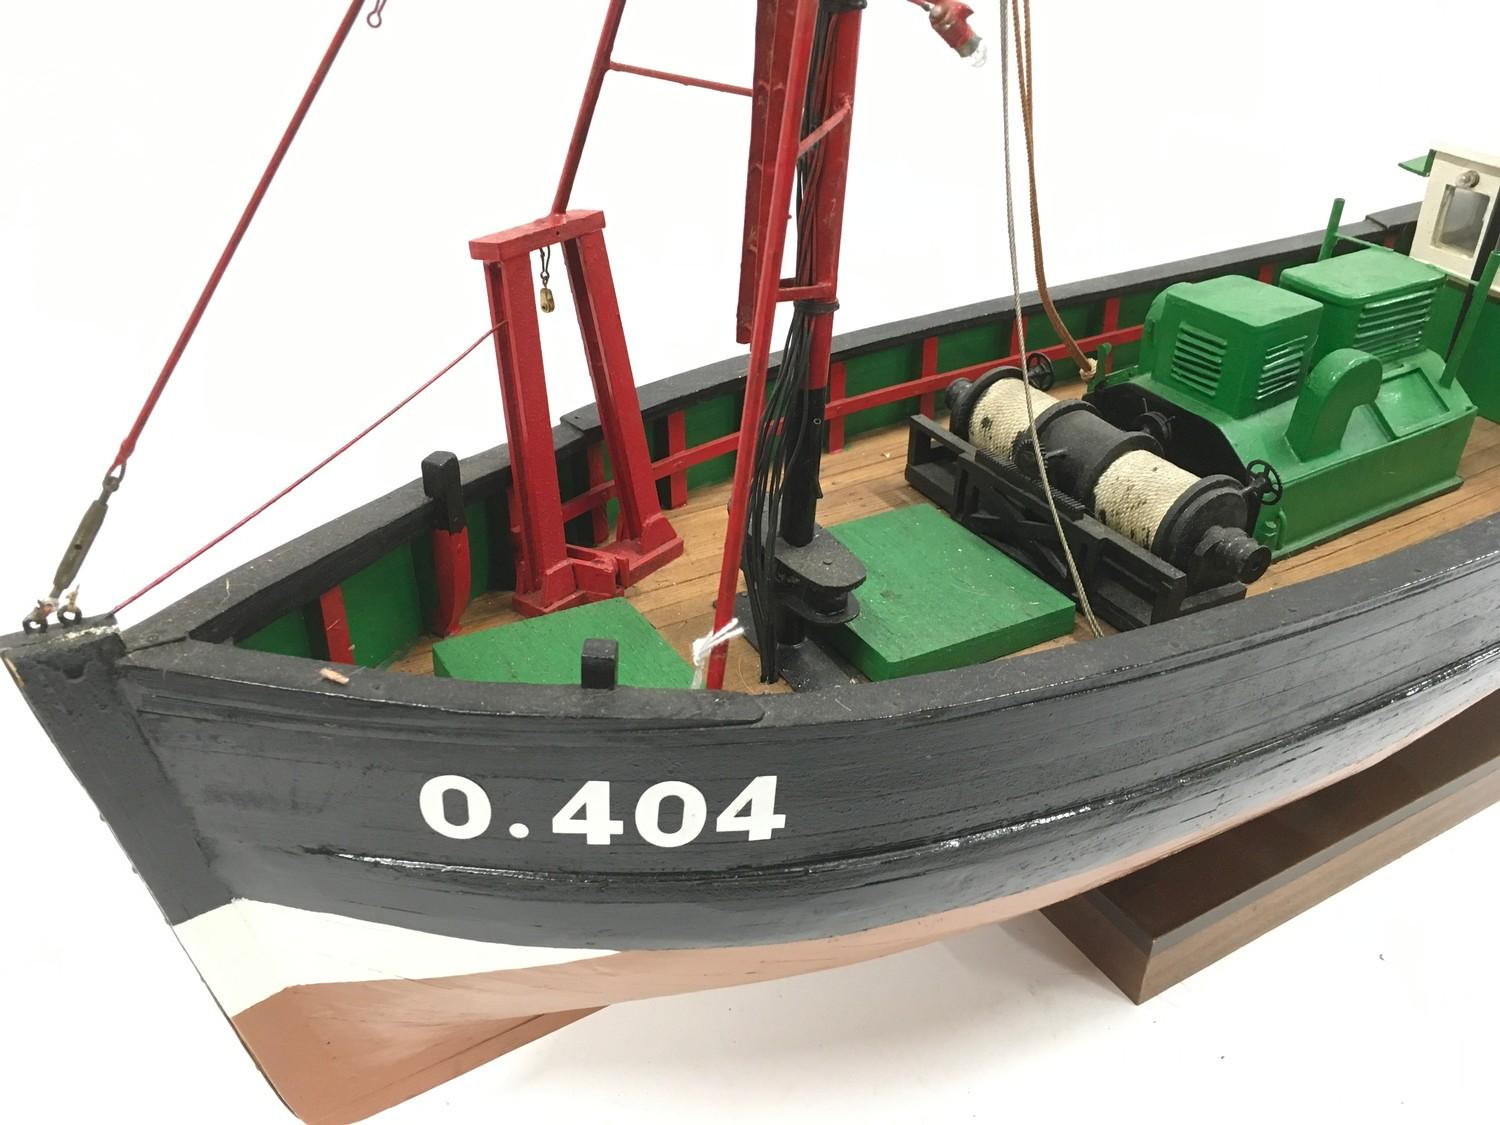 Wooden model of a boat. - Image 2 of 3